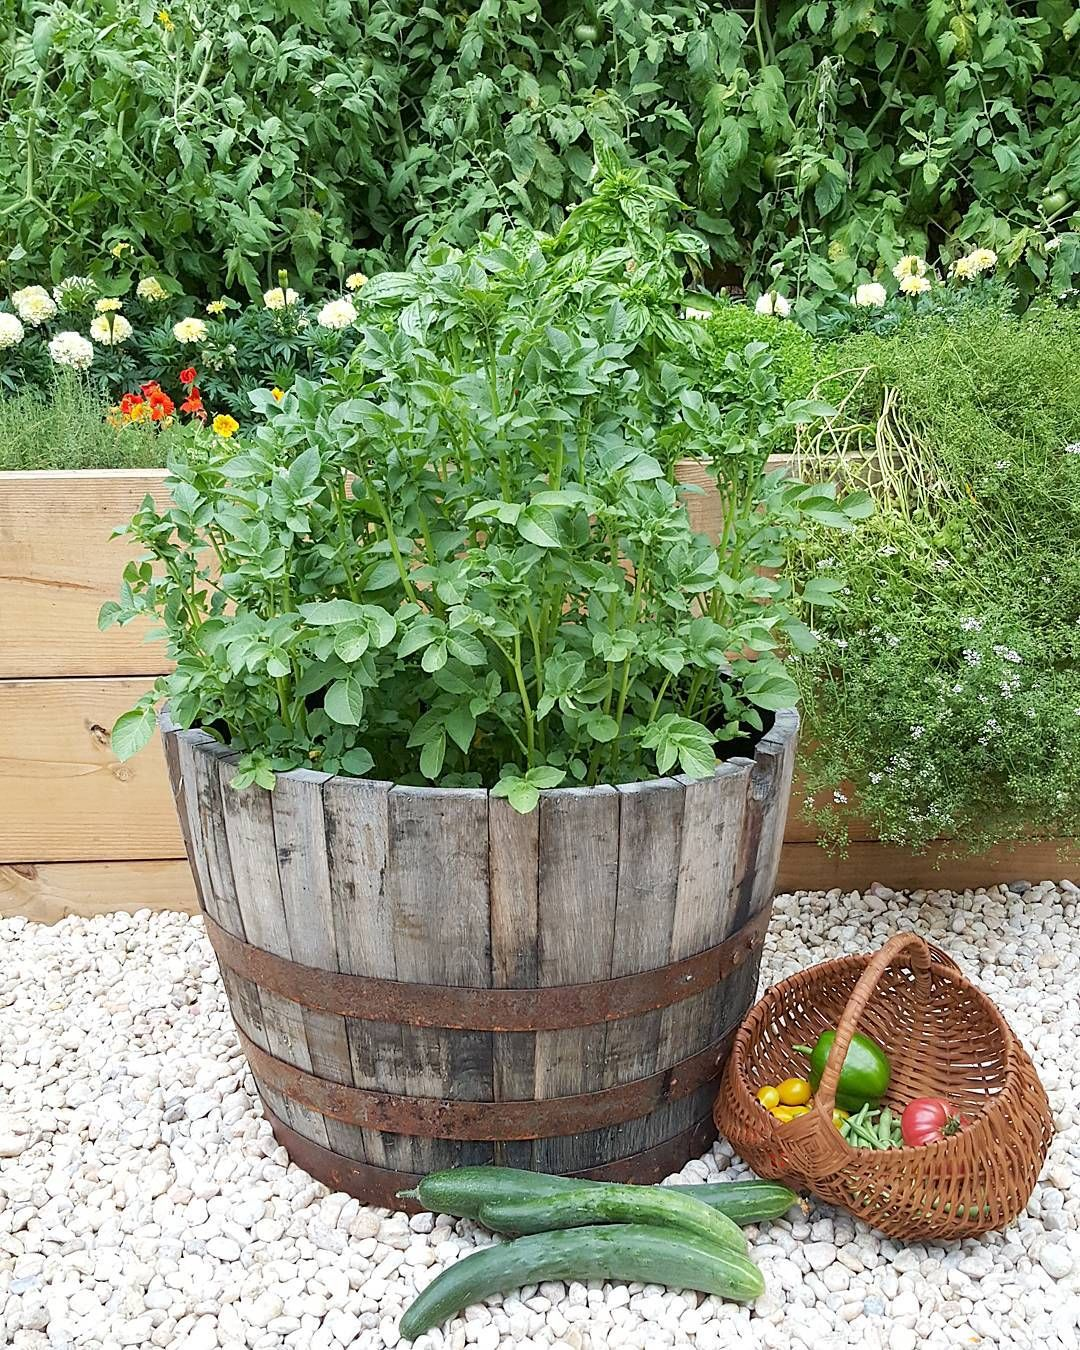 Growing Potatoes In A Barrel Planter From Tractor Supply Container Gardening Containergarden Tractorsupply Container Gardening Flower Farm Barrel Planter